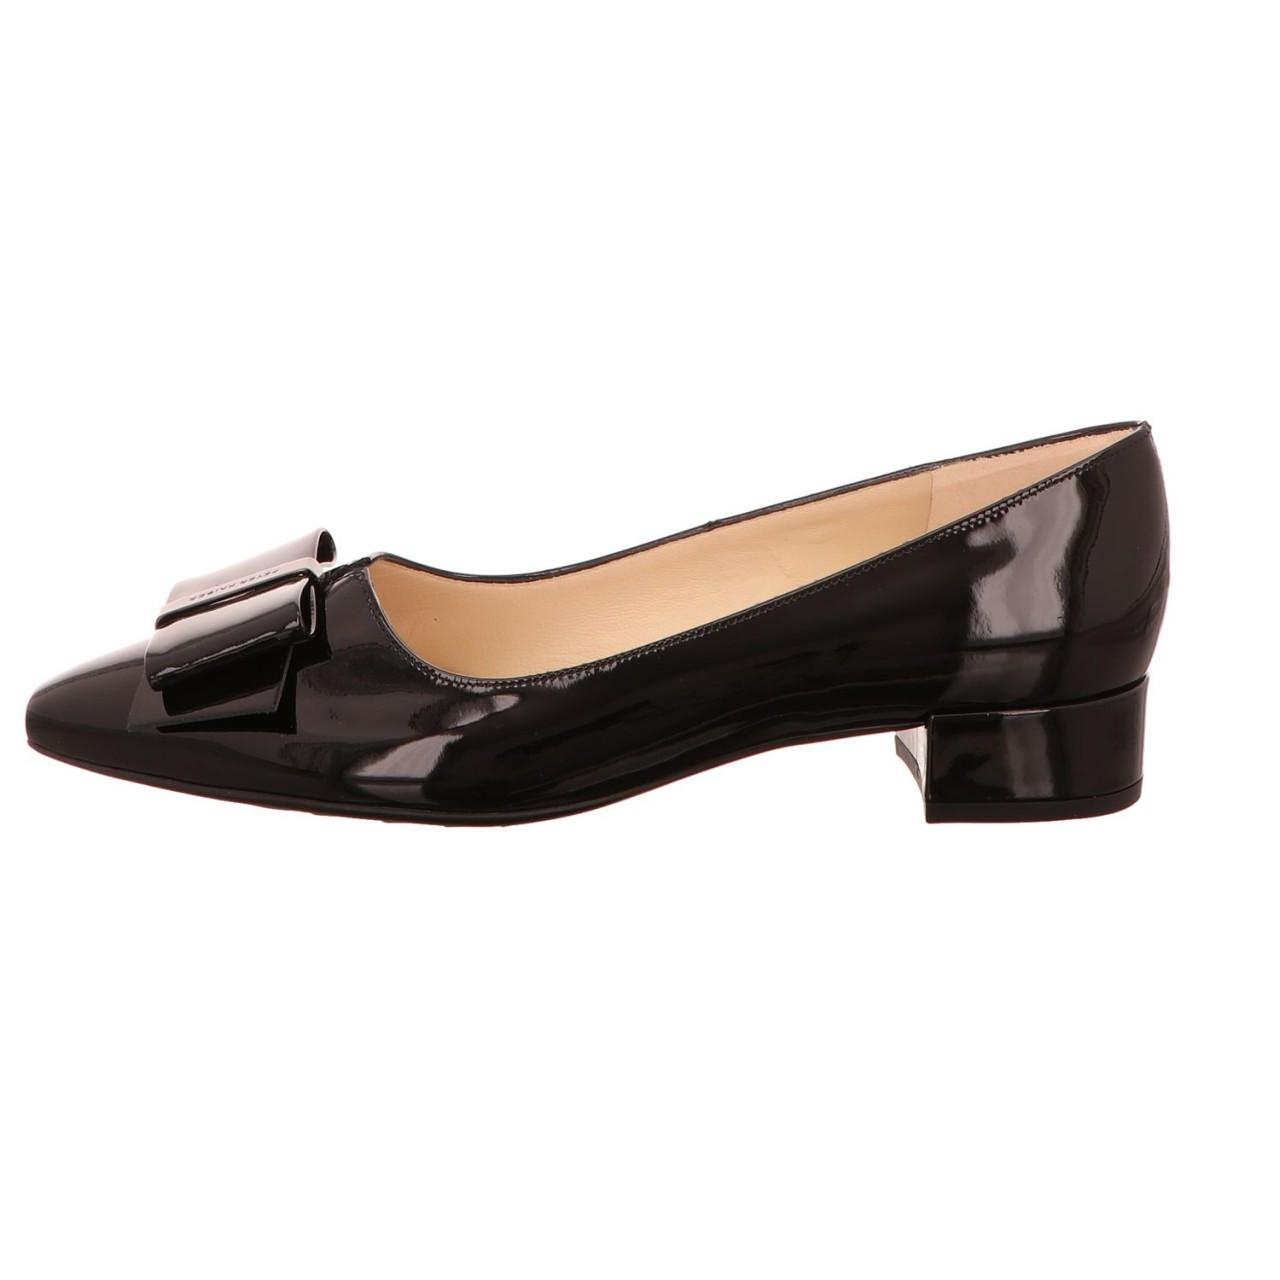 50be5c17e86 Peter Kaiser Wo Court Shoes Black Sera in Black - Lyst